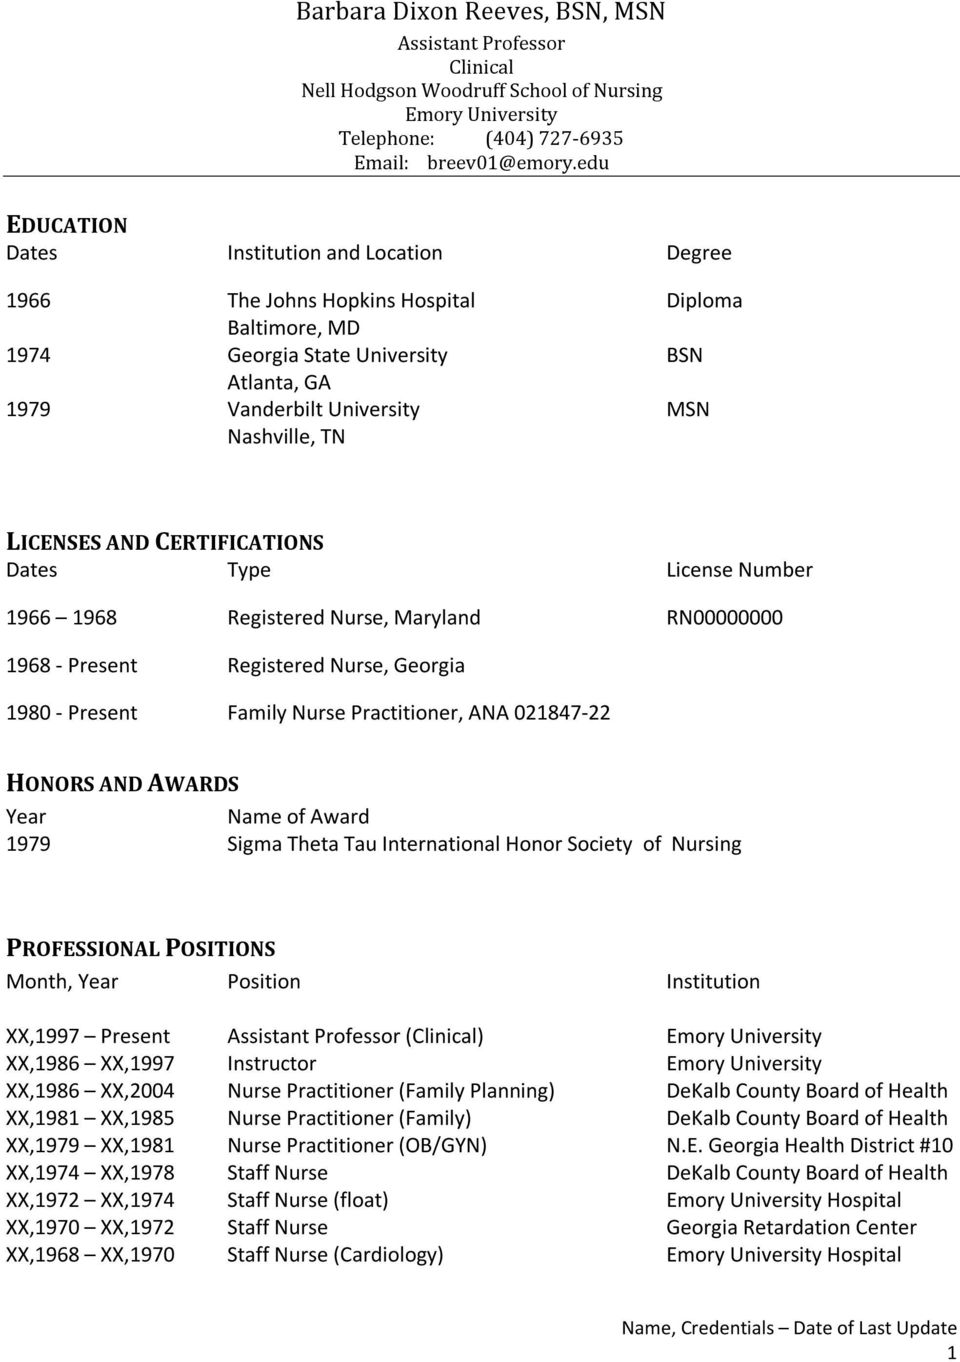 LICENSES AND CERTIFICATIONS Dates Type License Number 1966 1968 1968 - Present Registered Nurse, Maryland Registered Nurse, Georgia RN00000000 1980 - Present Family Nurse Practitioner, ANA 021847-22